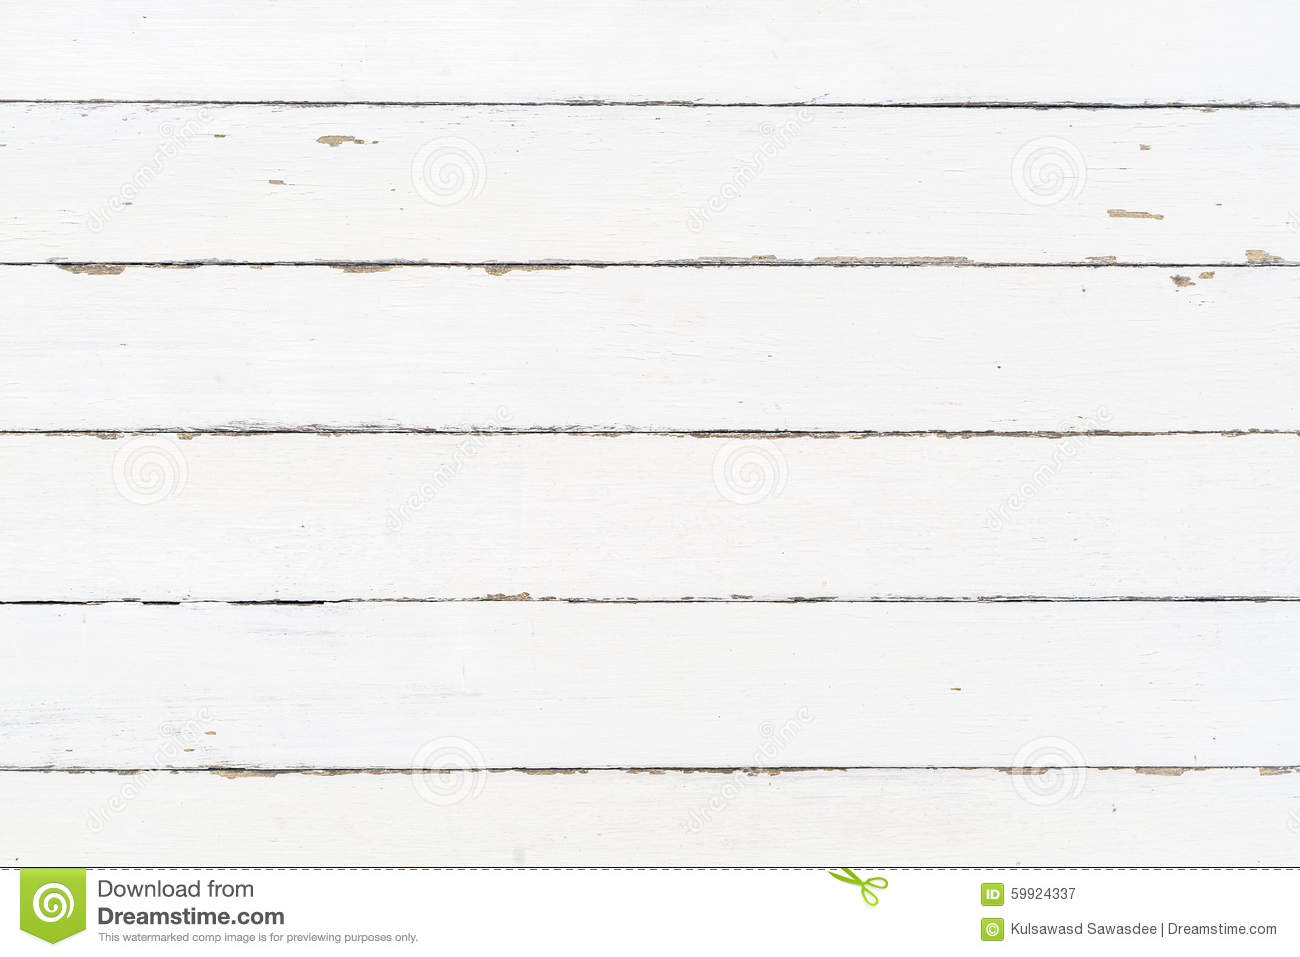 White Wood Wall : White Wood Wall Texture As Background Stock Photo - Image: 59924337